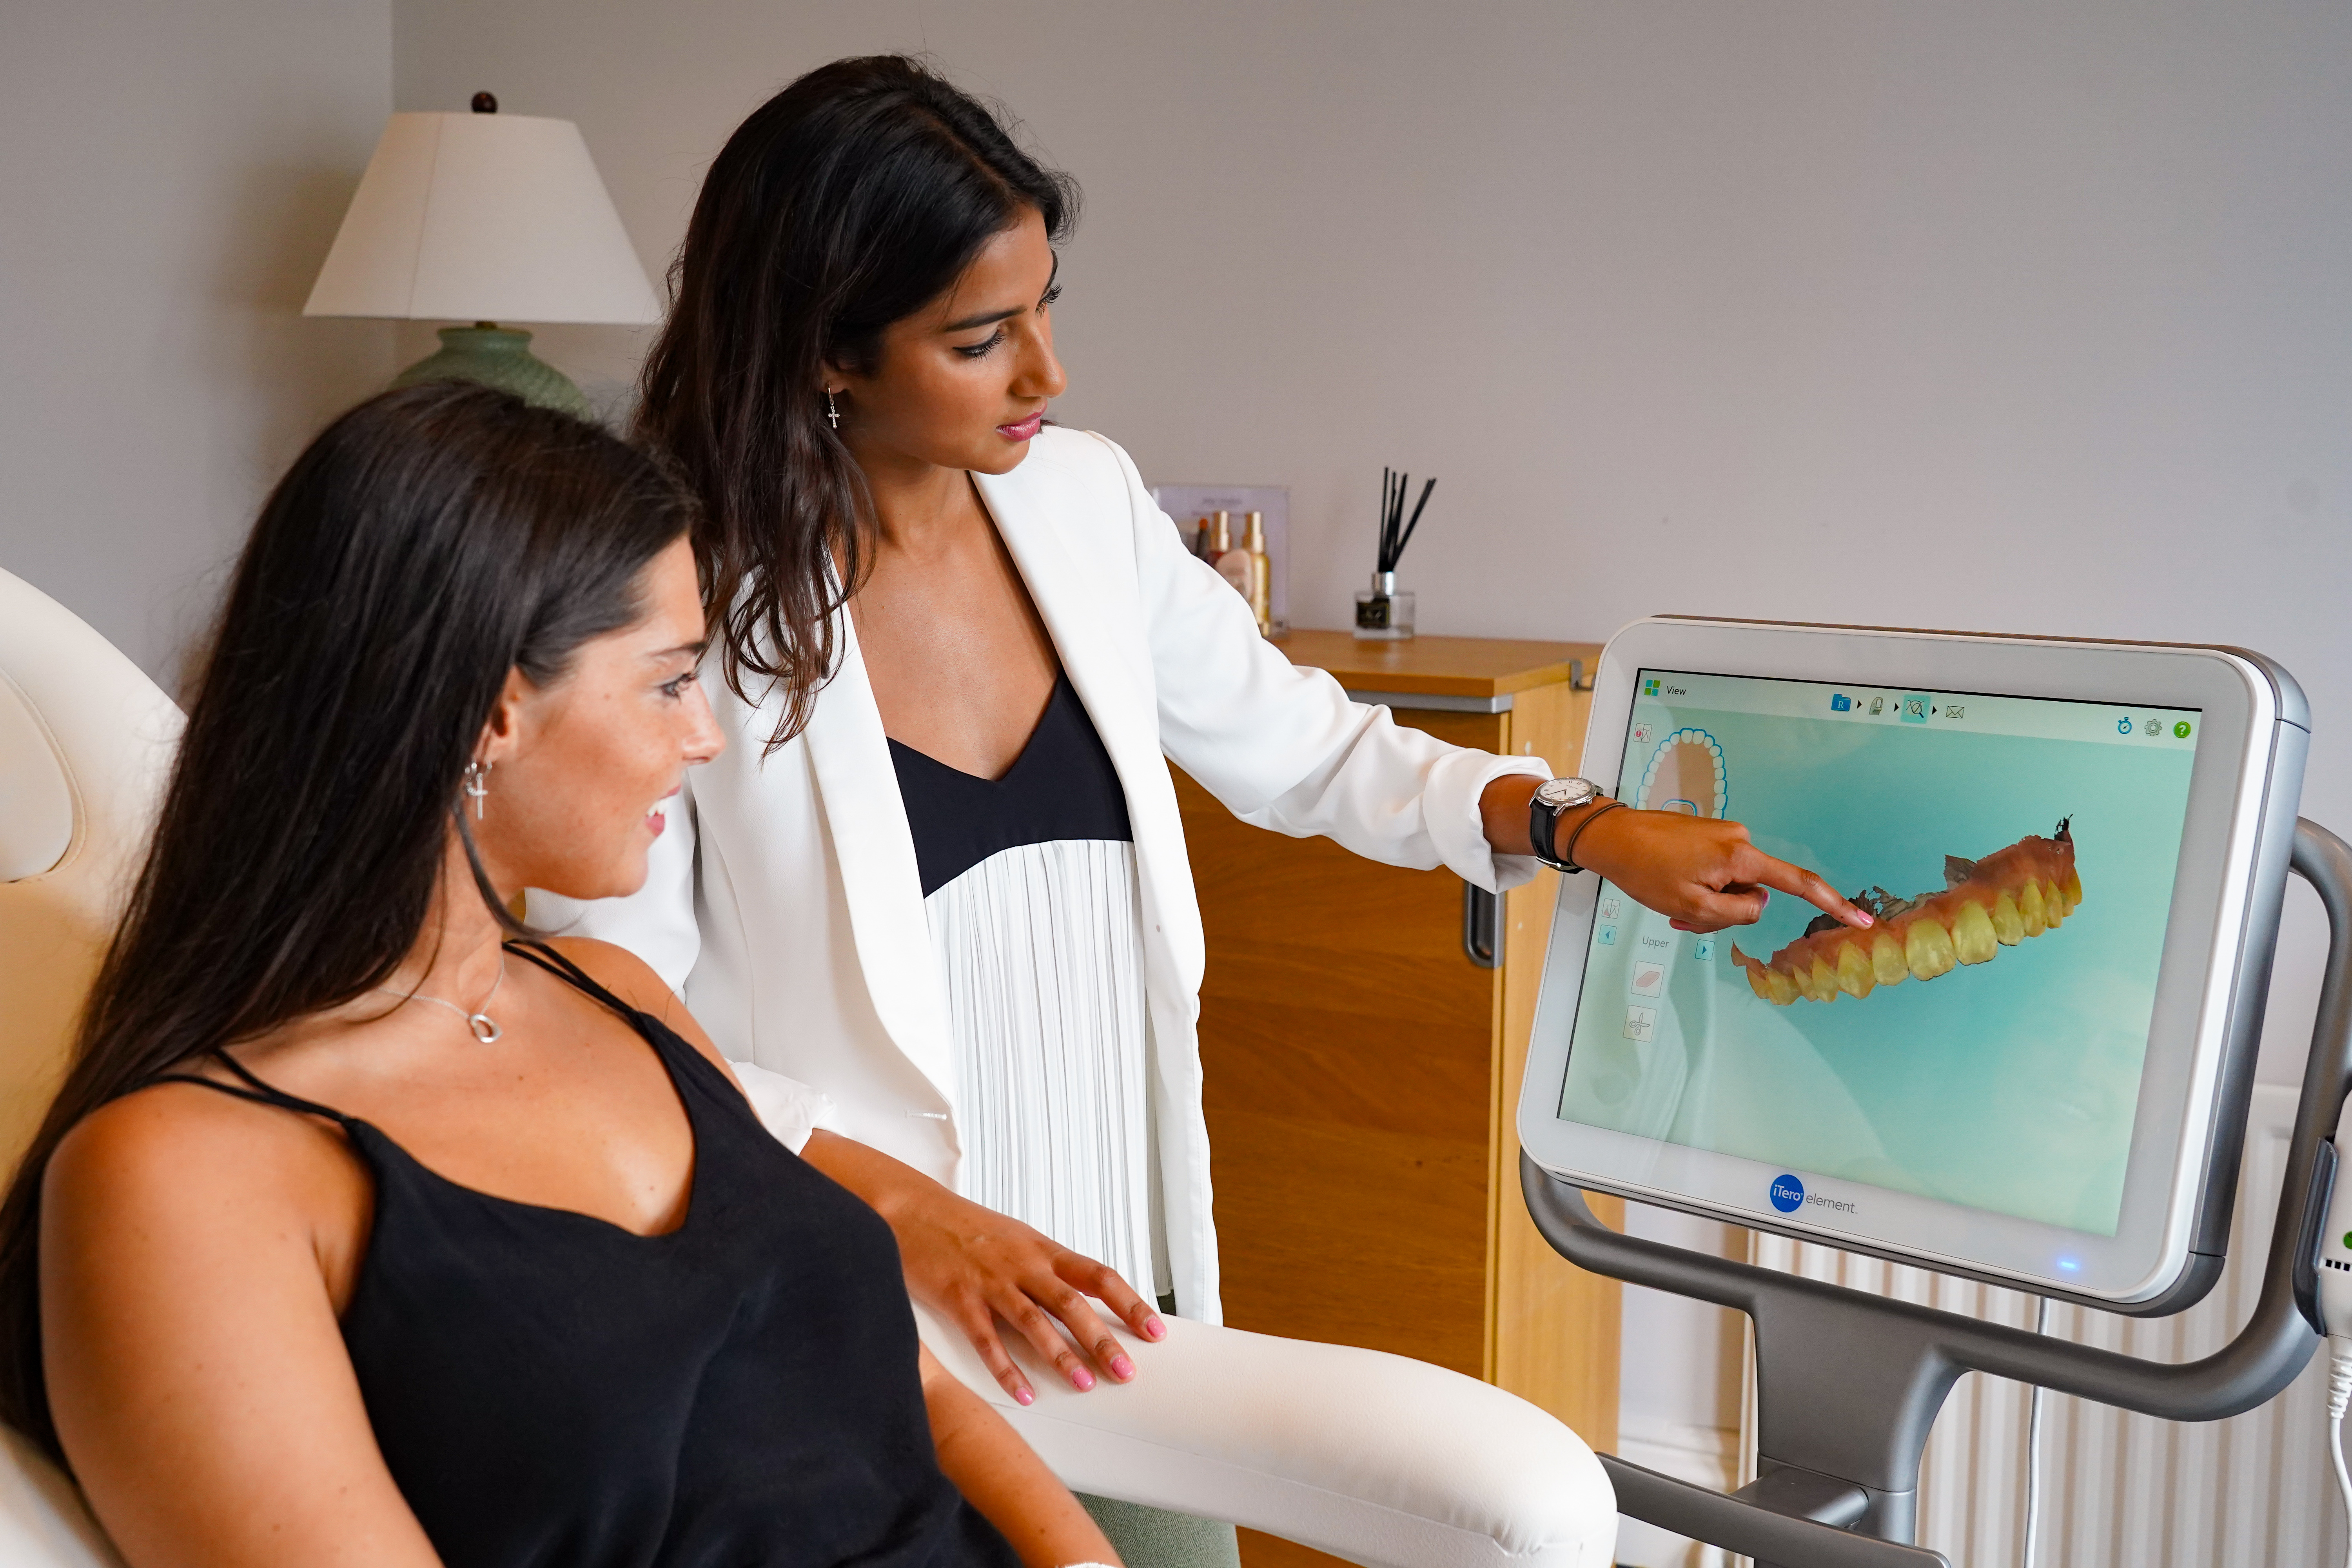 Honour Health dentist in Newcastle showing Invisalign simulation to patient.